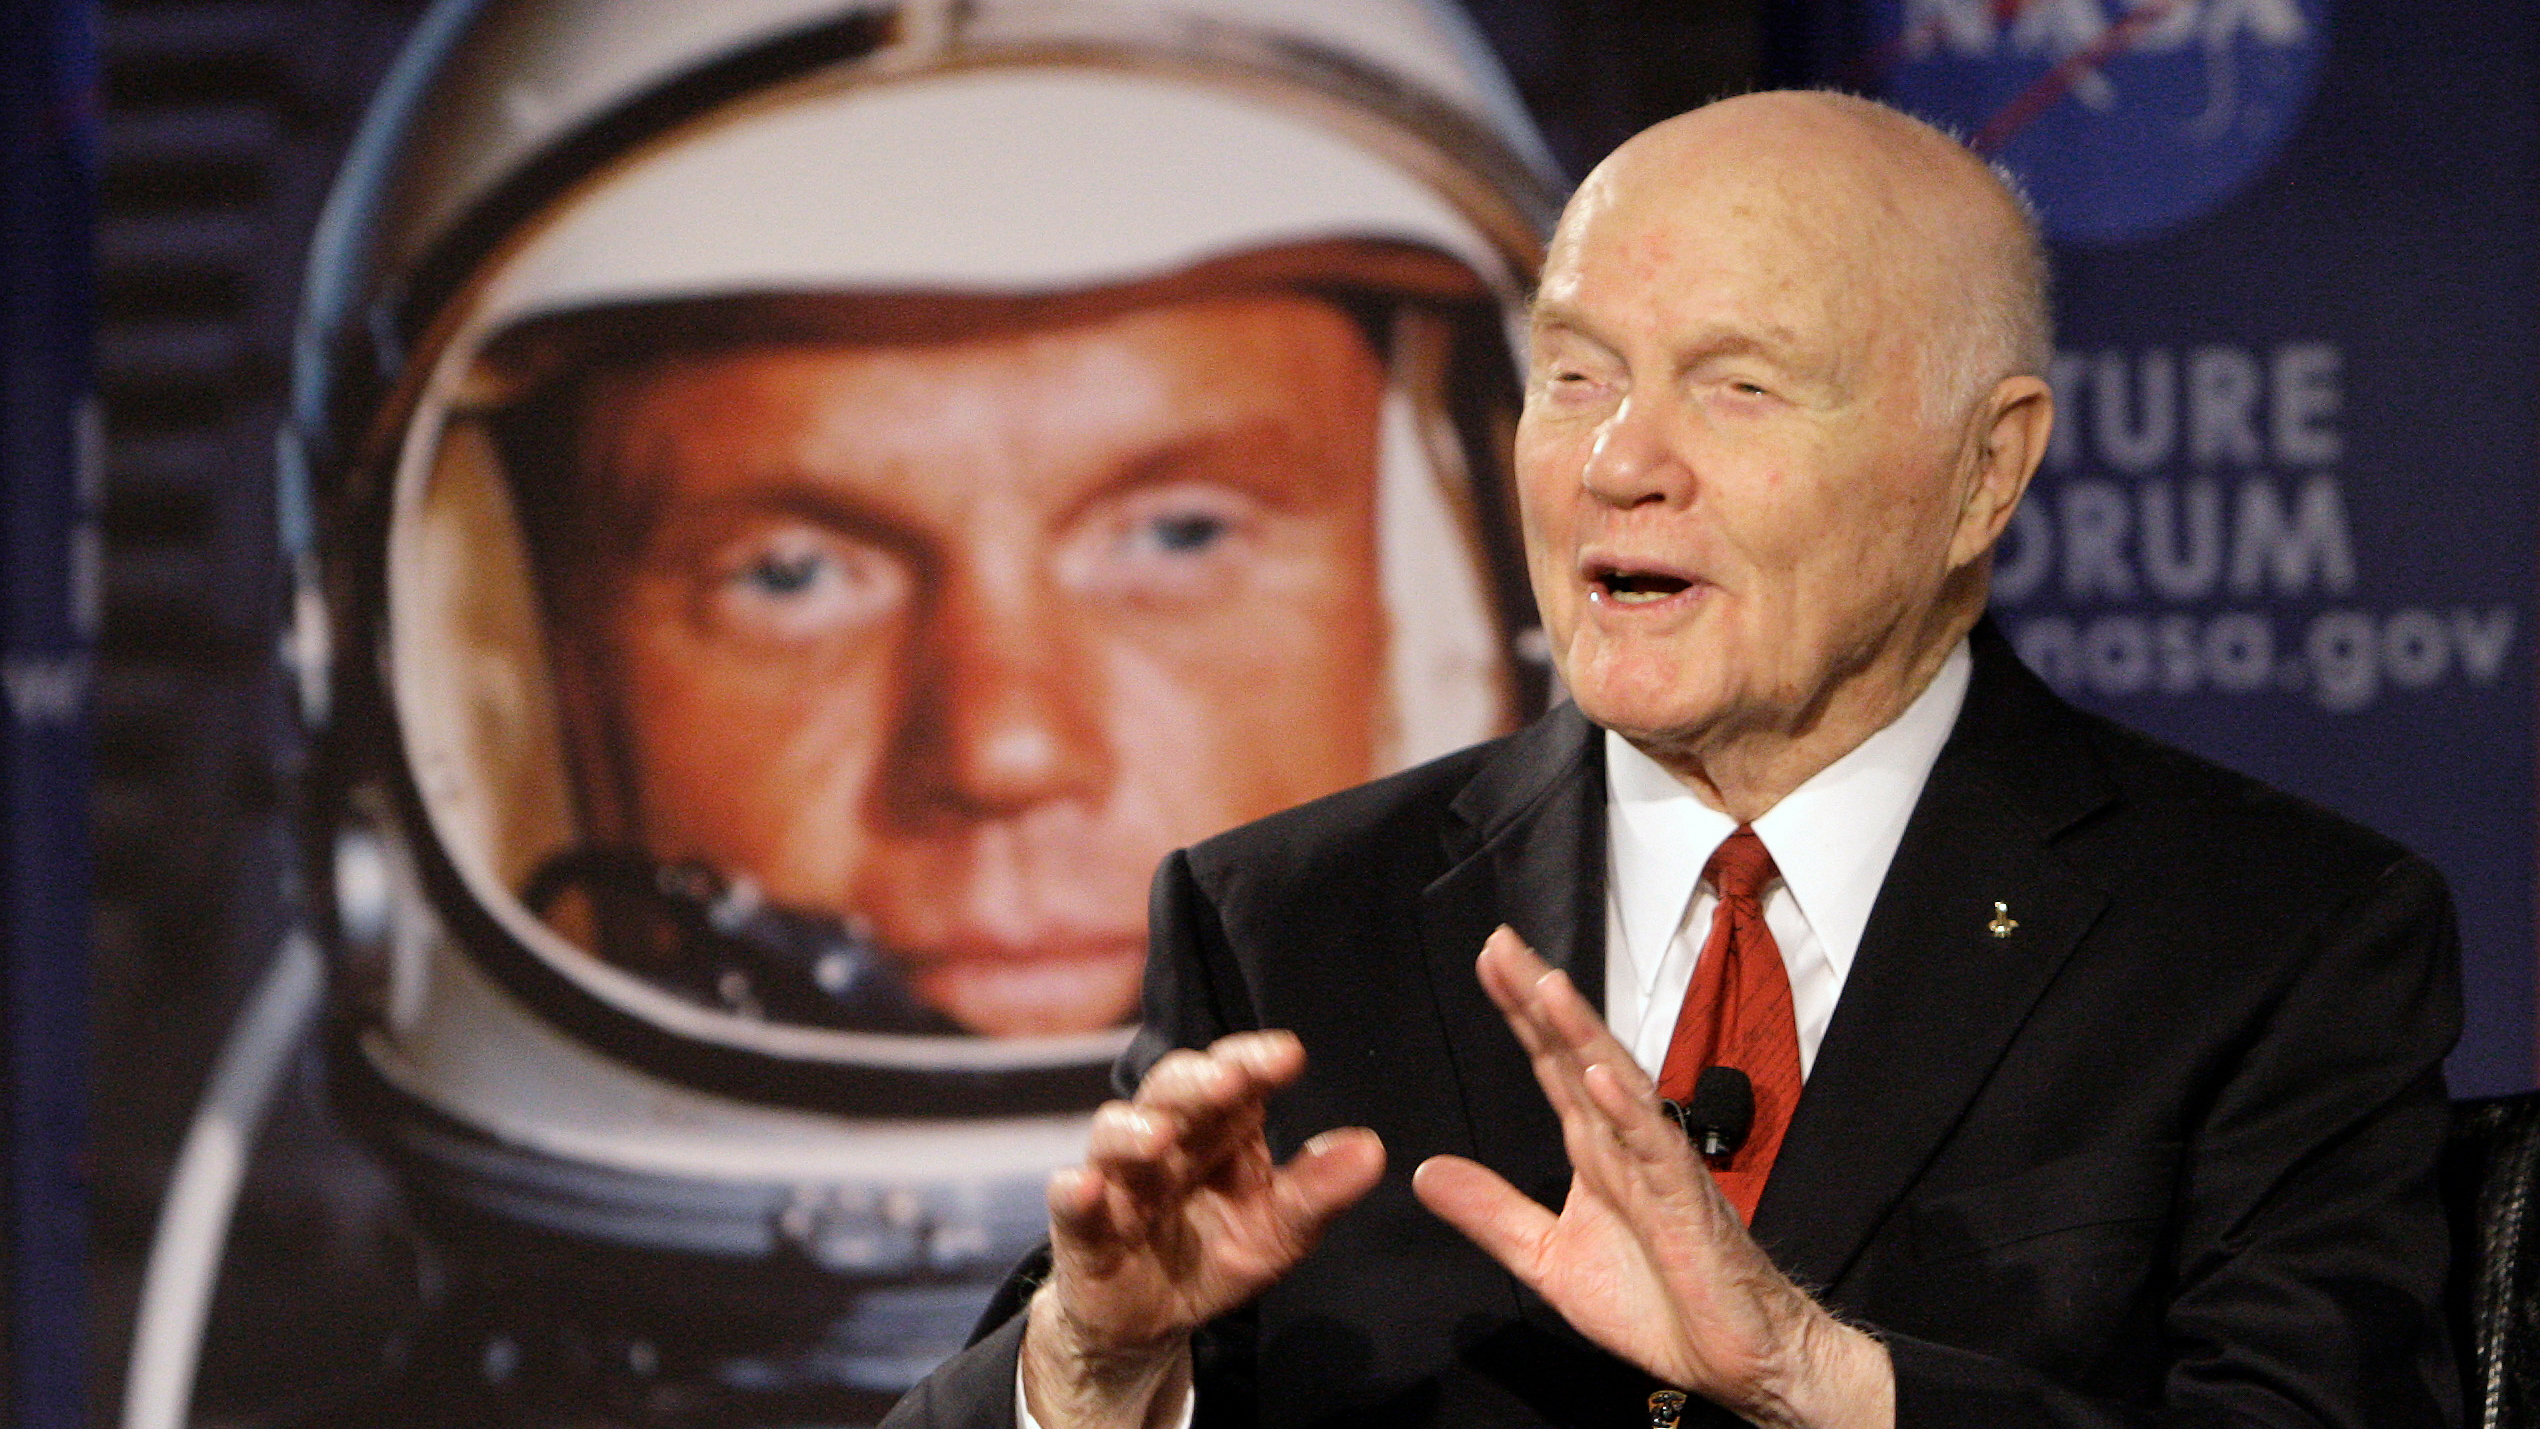 Former U.S. Sen. John Glenn talks with astronauts on the International Space Station via satellite before a discussion titled